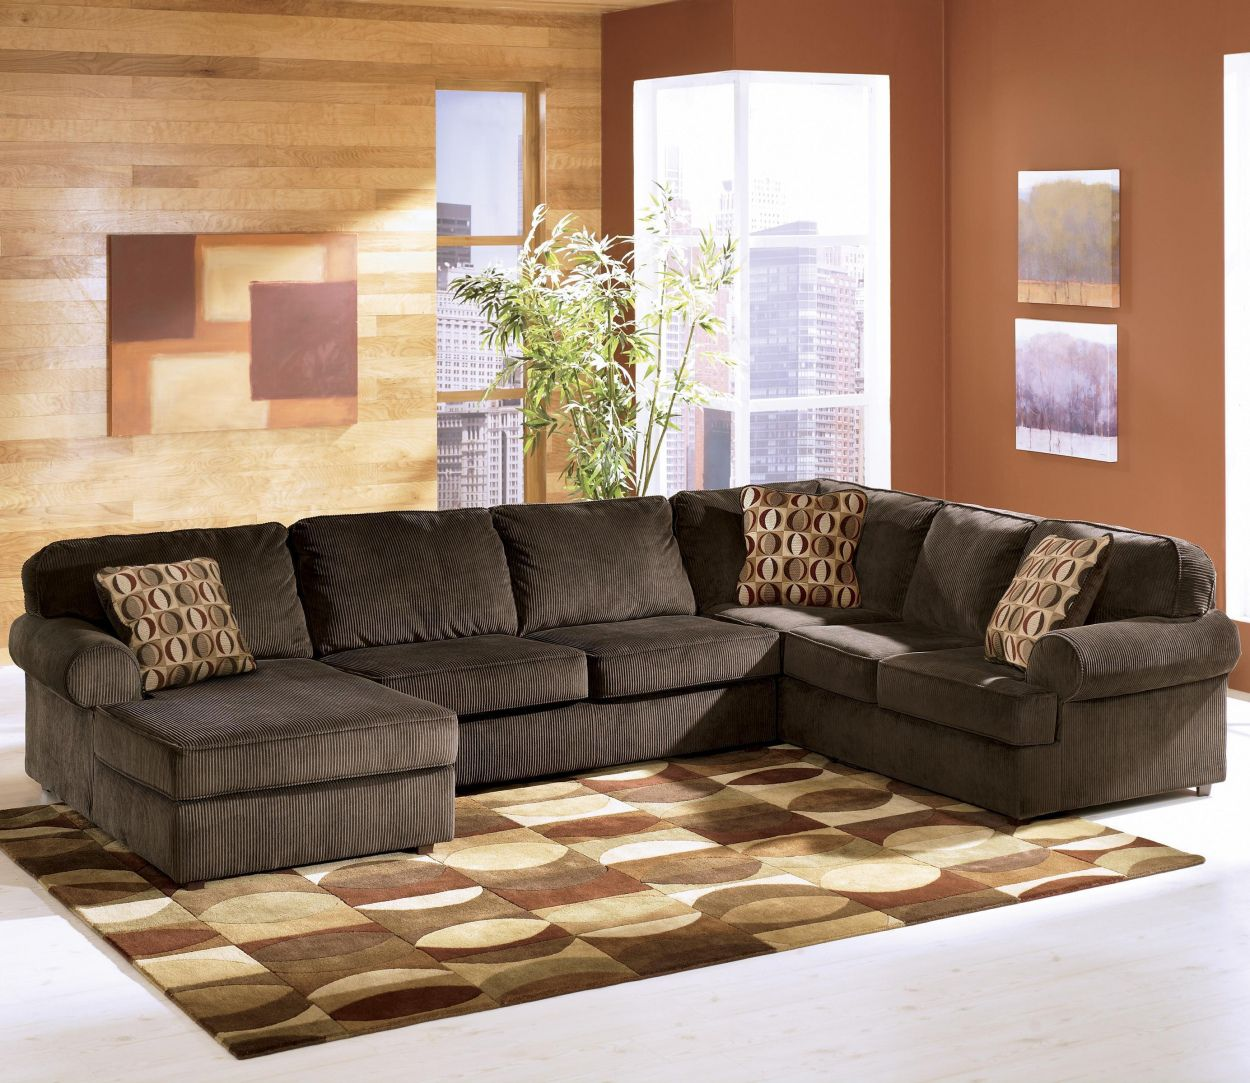 ashley furniture daytona beach fl cool furniture ideas check more at http